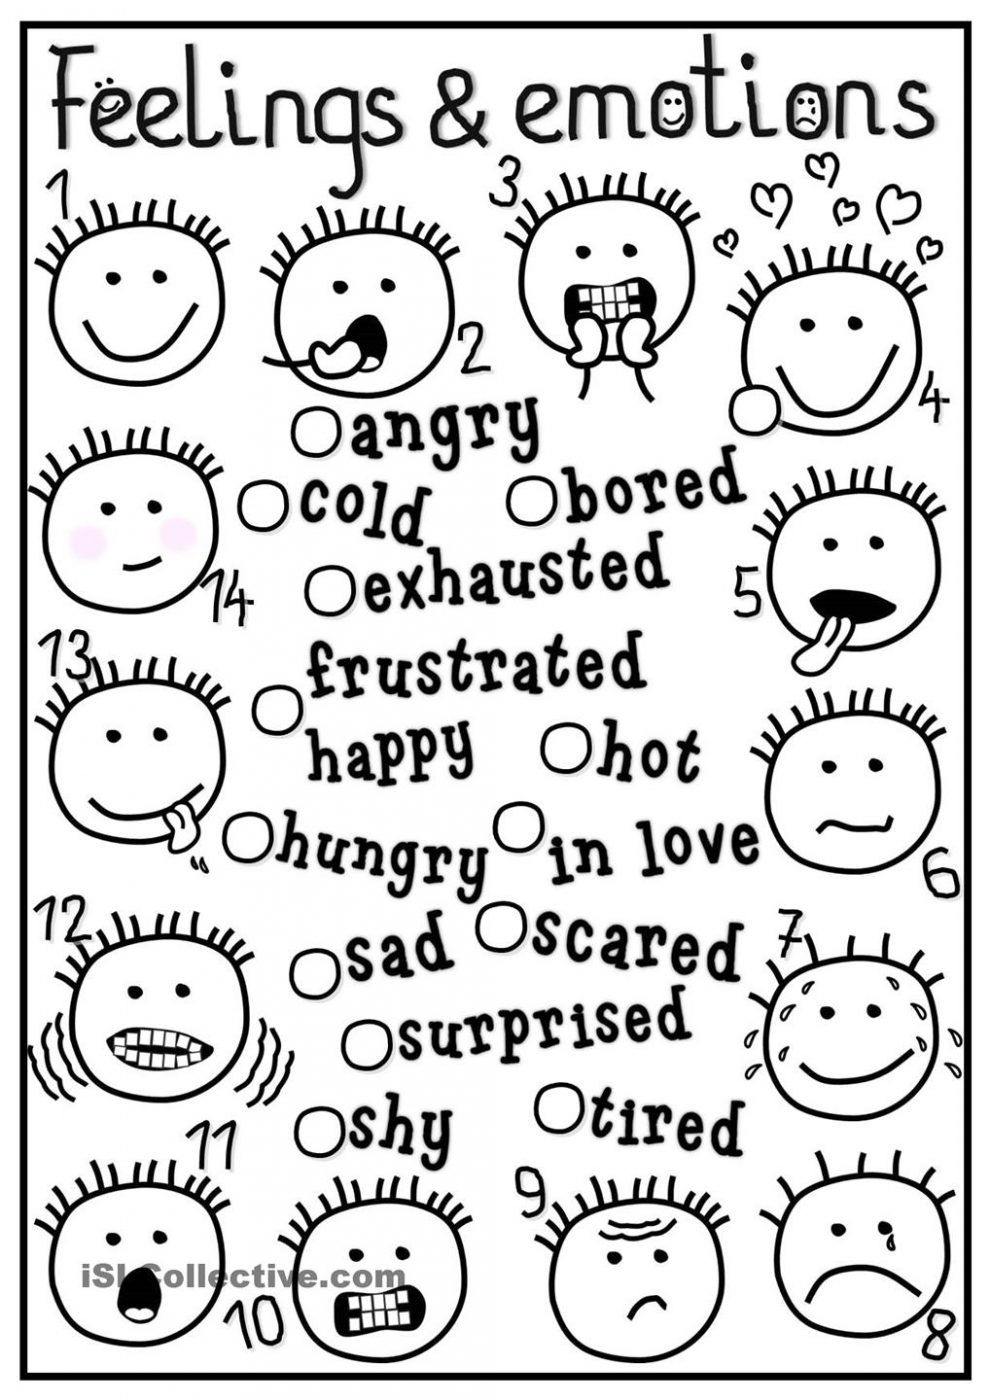 Top 19 Emotion Coloring Pages - Tiny Coloring Page  Feelings and